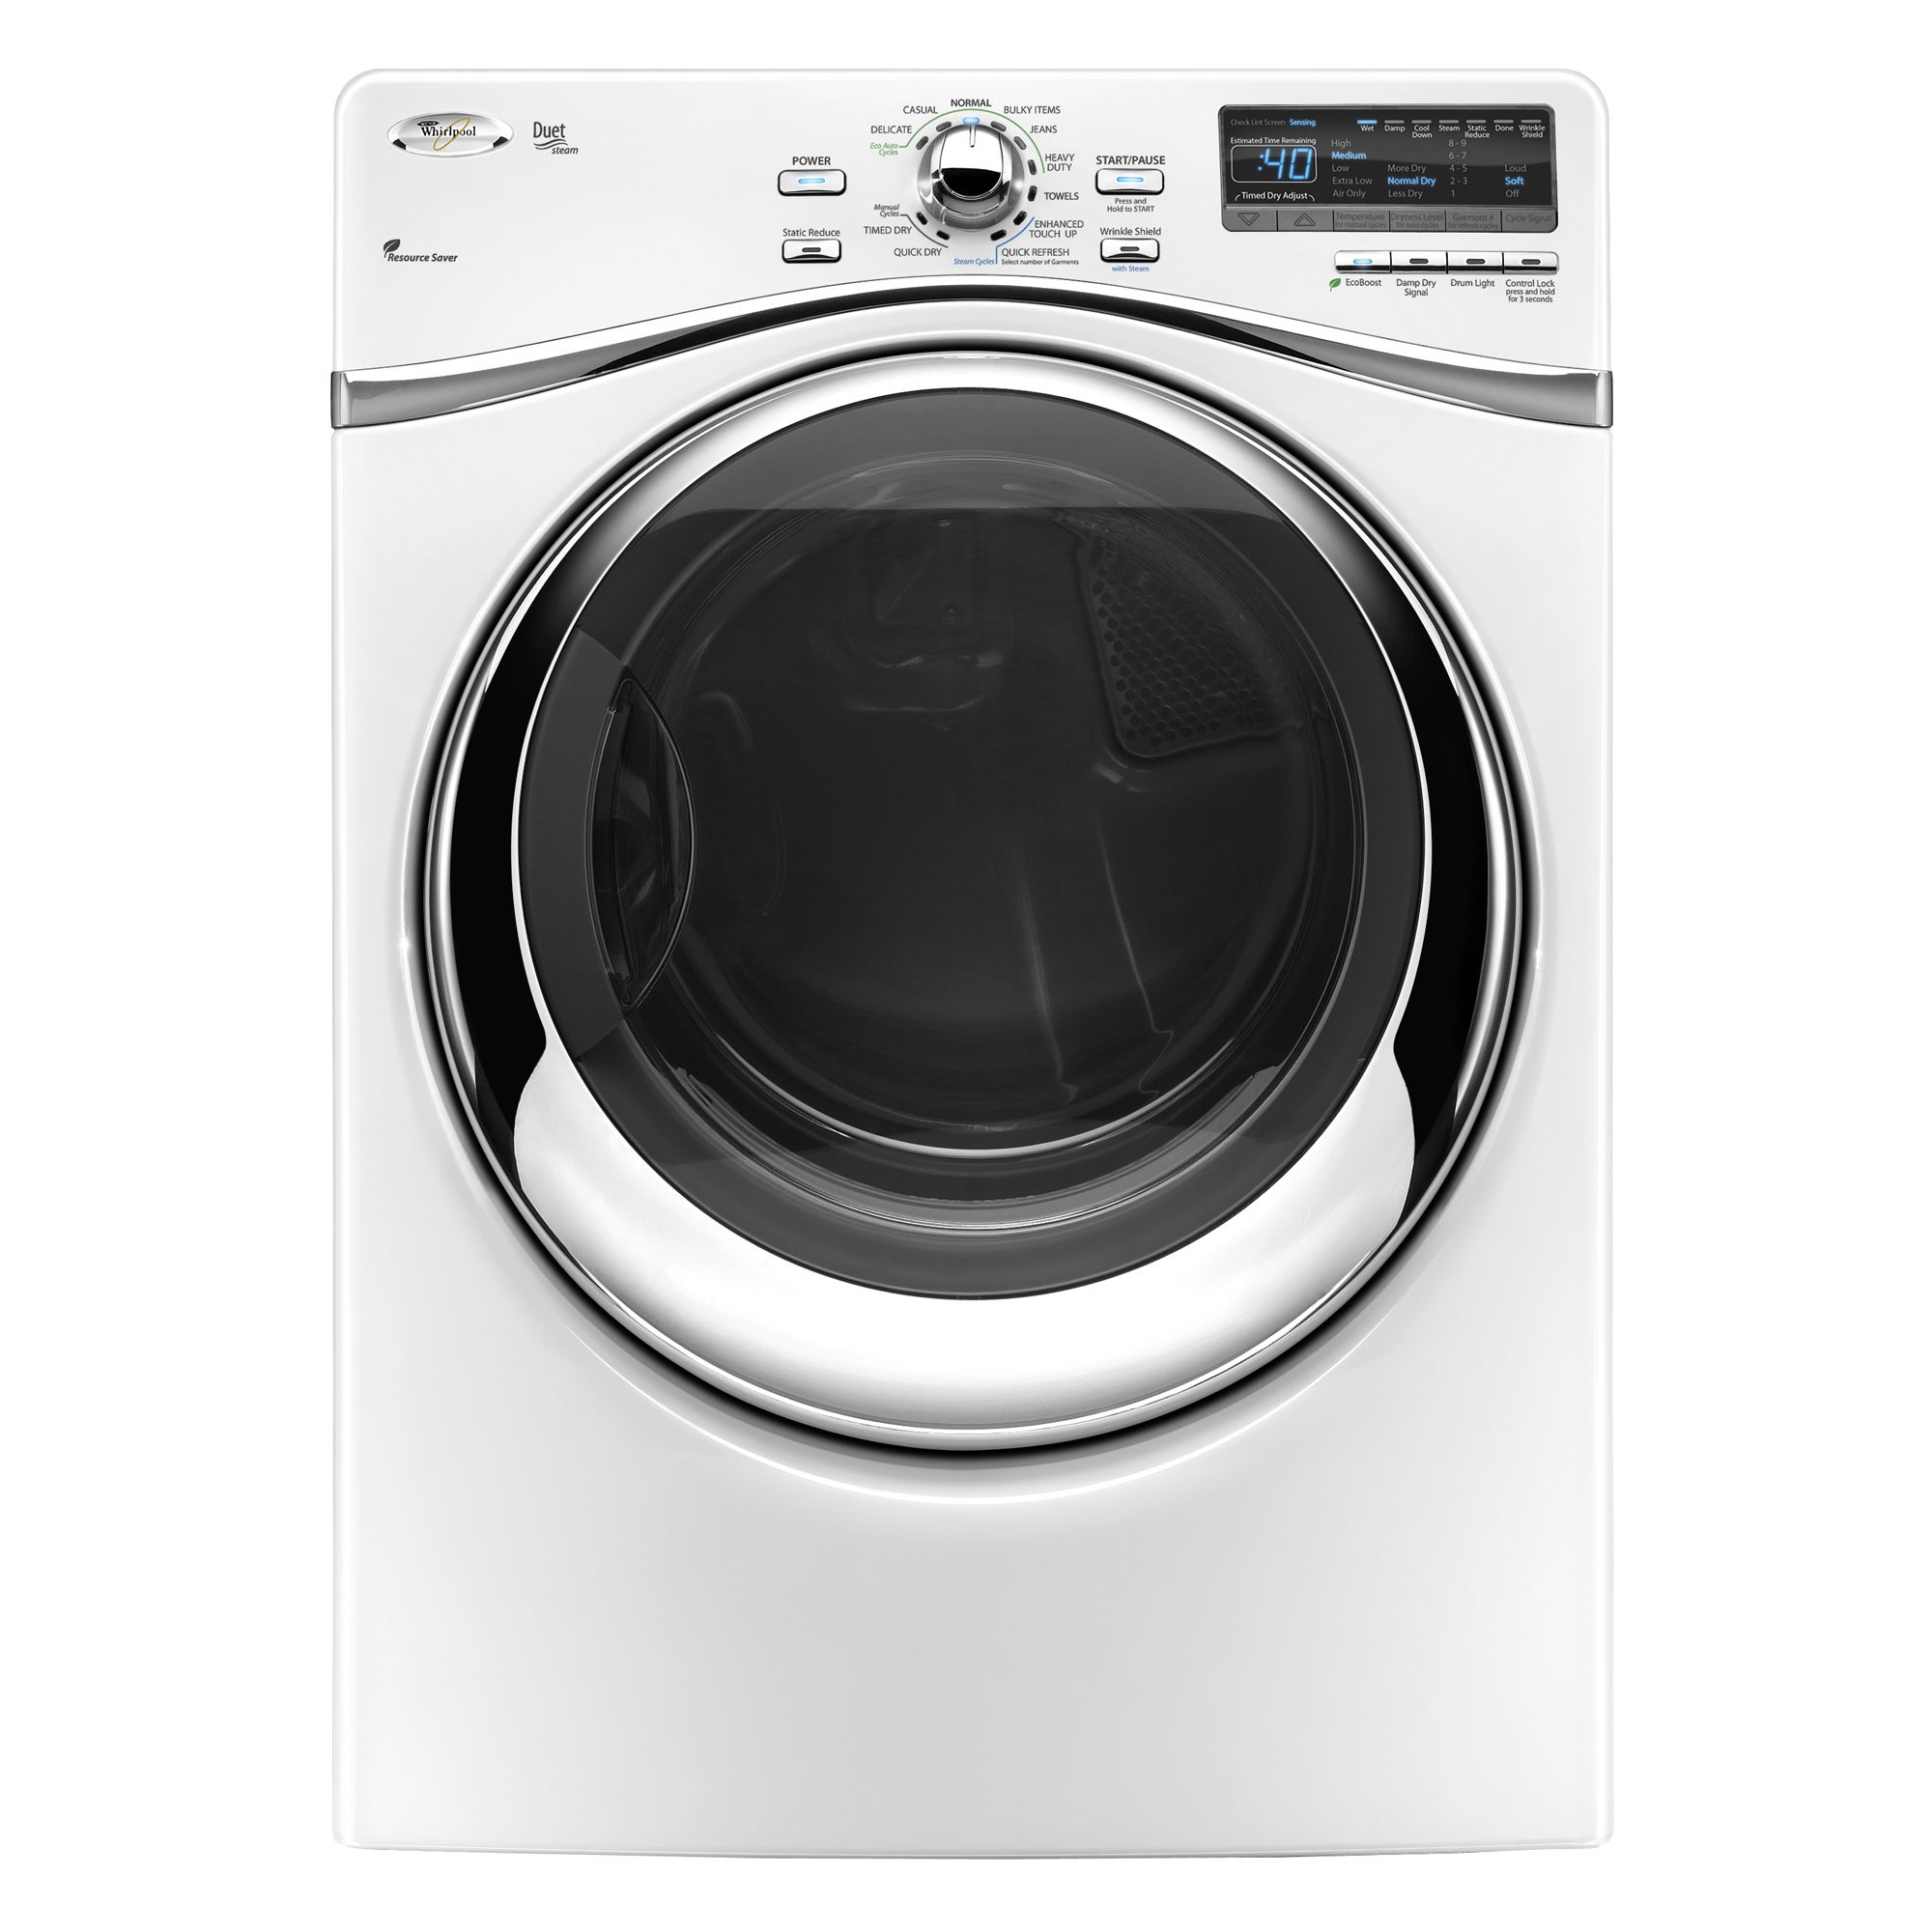 Whirlpool 7.4 cu. ft.  Gas Dryer